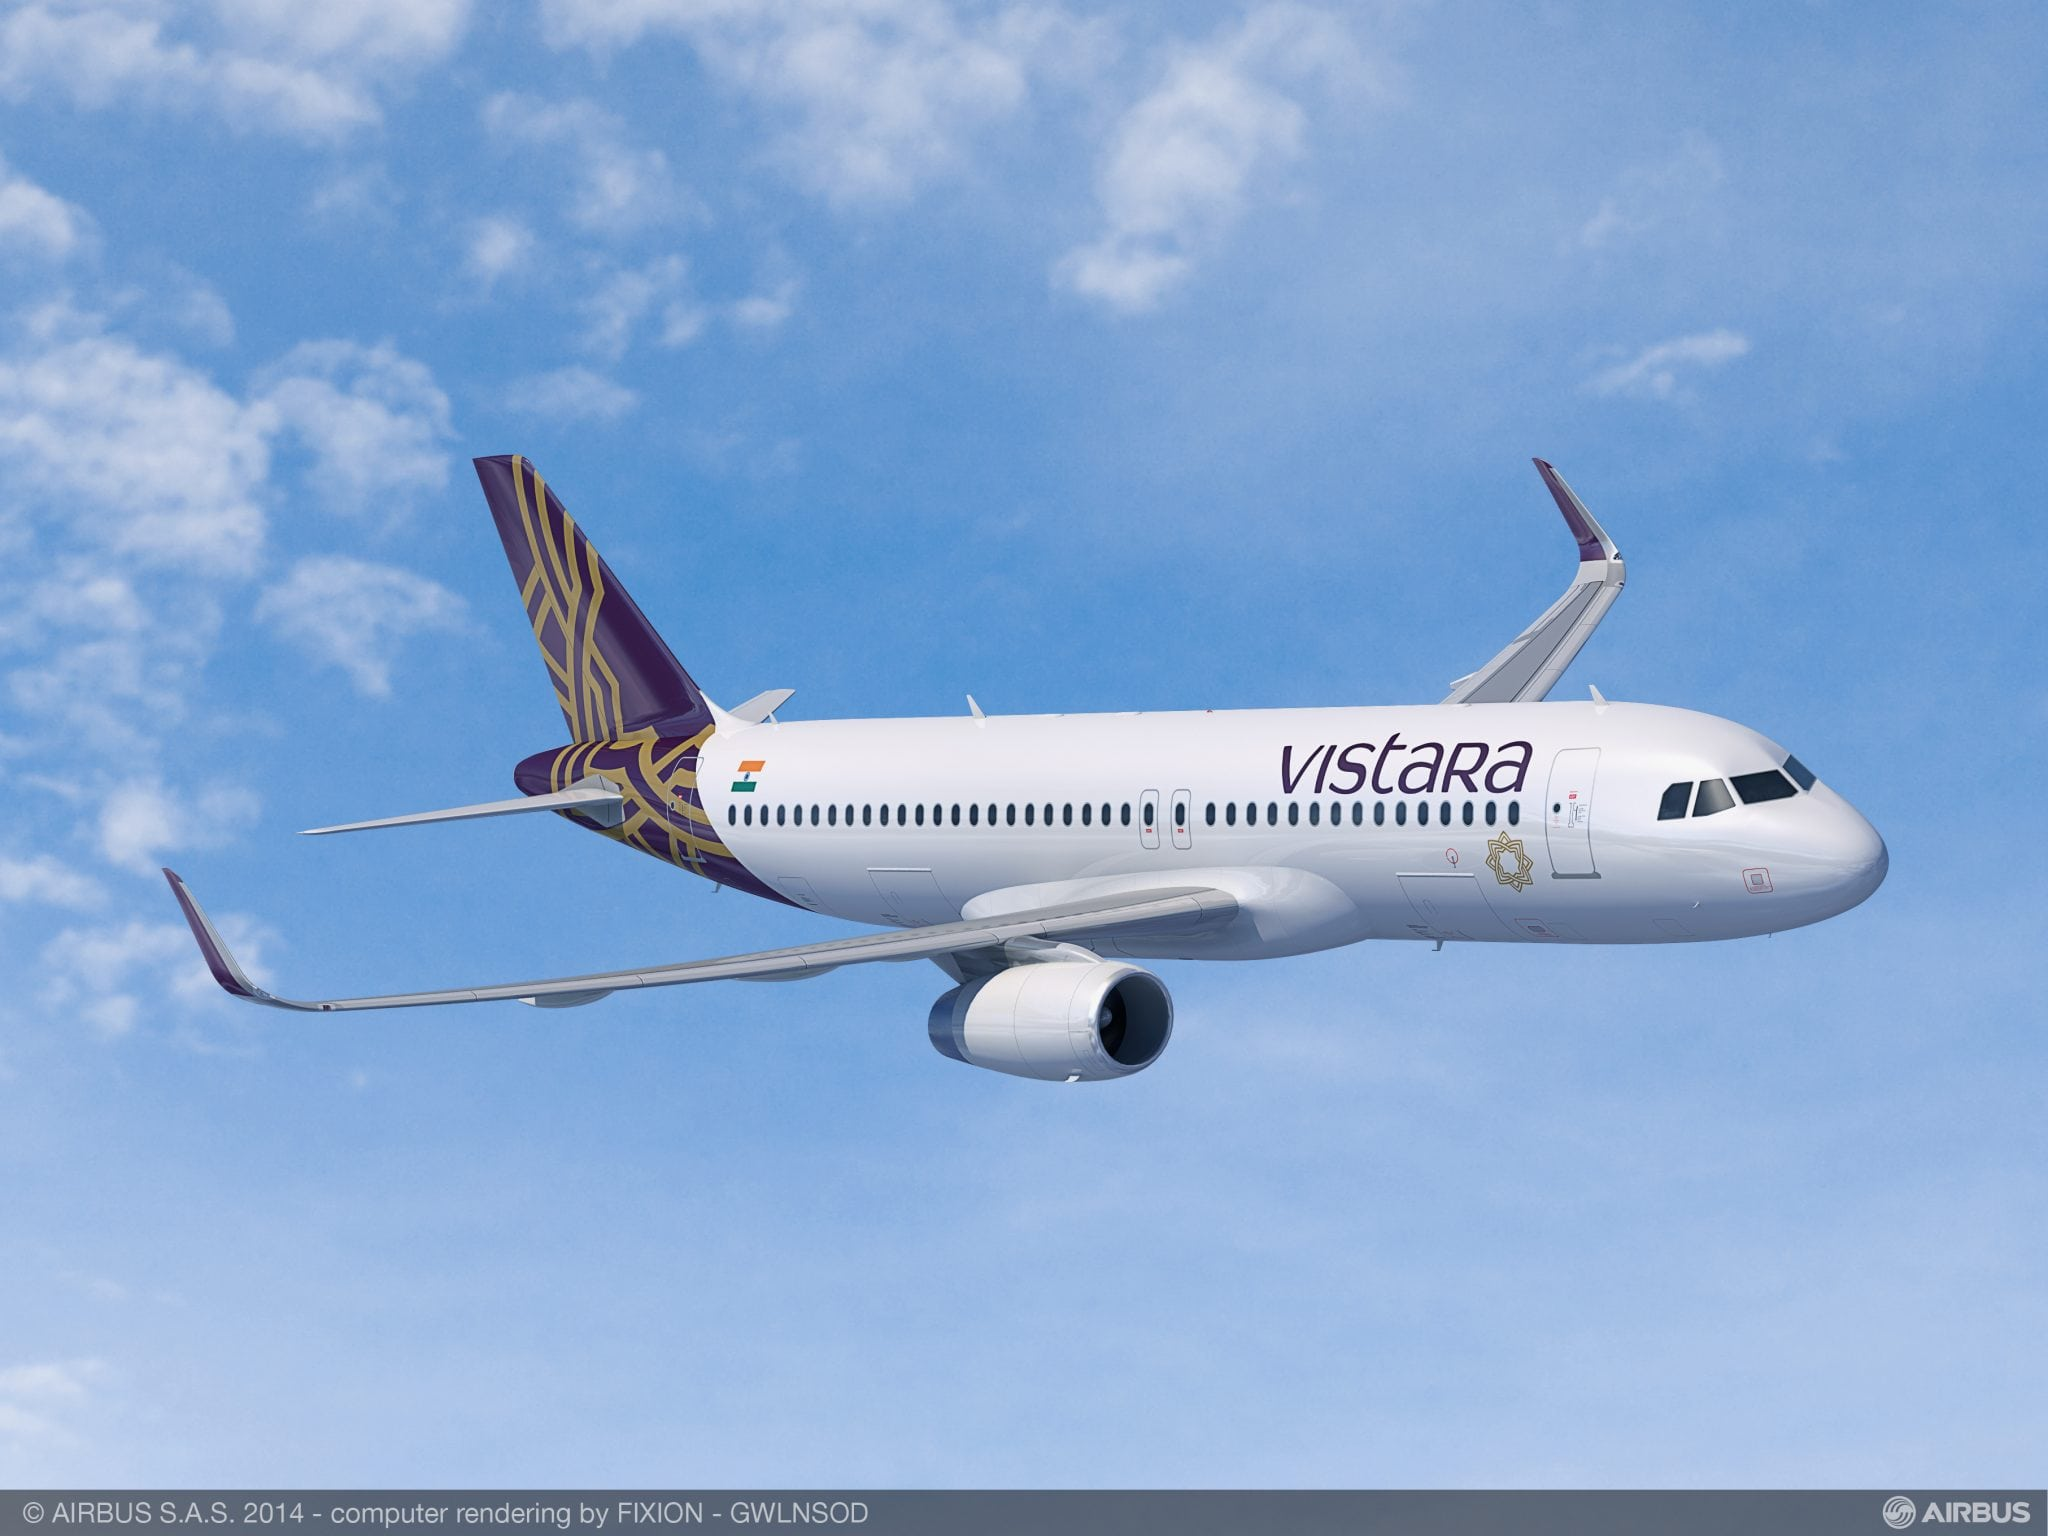 Vistara airlines flight, rendering